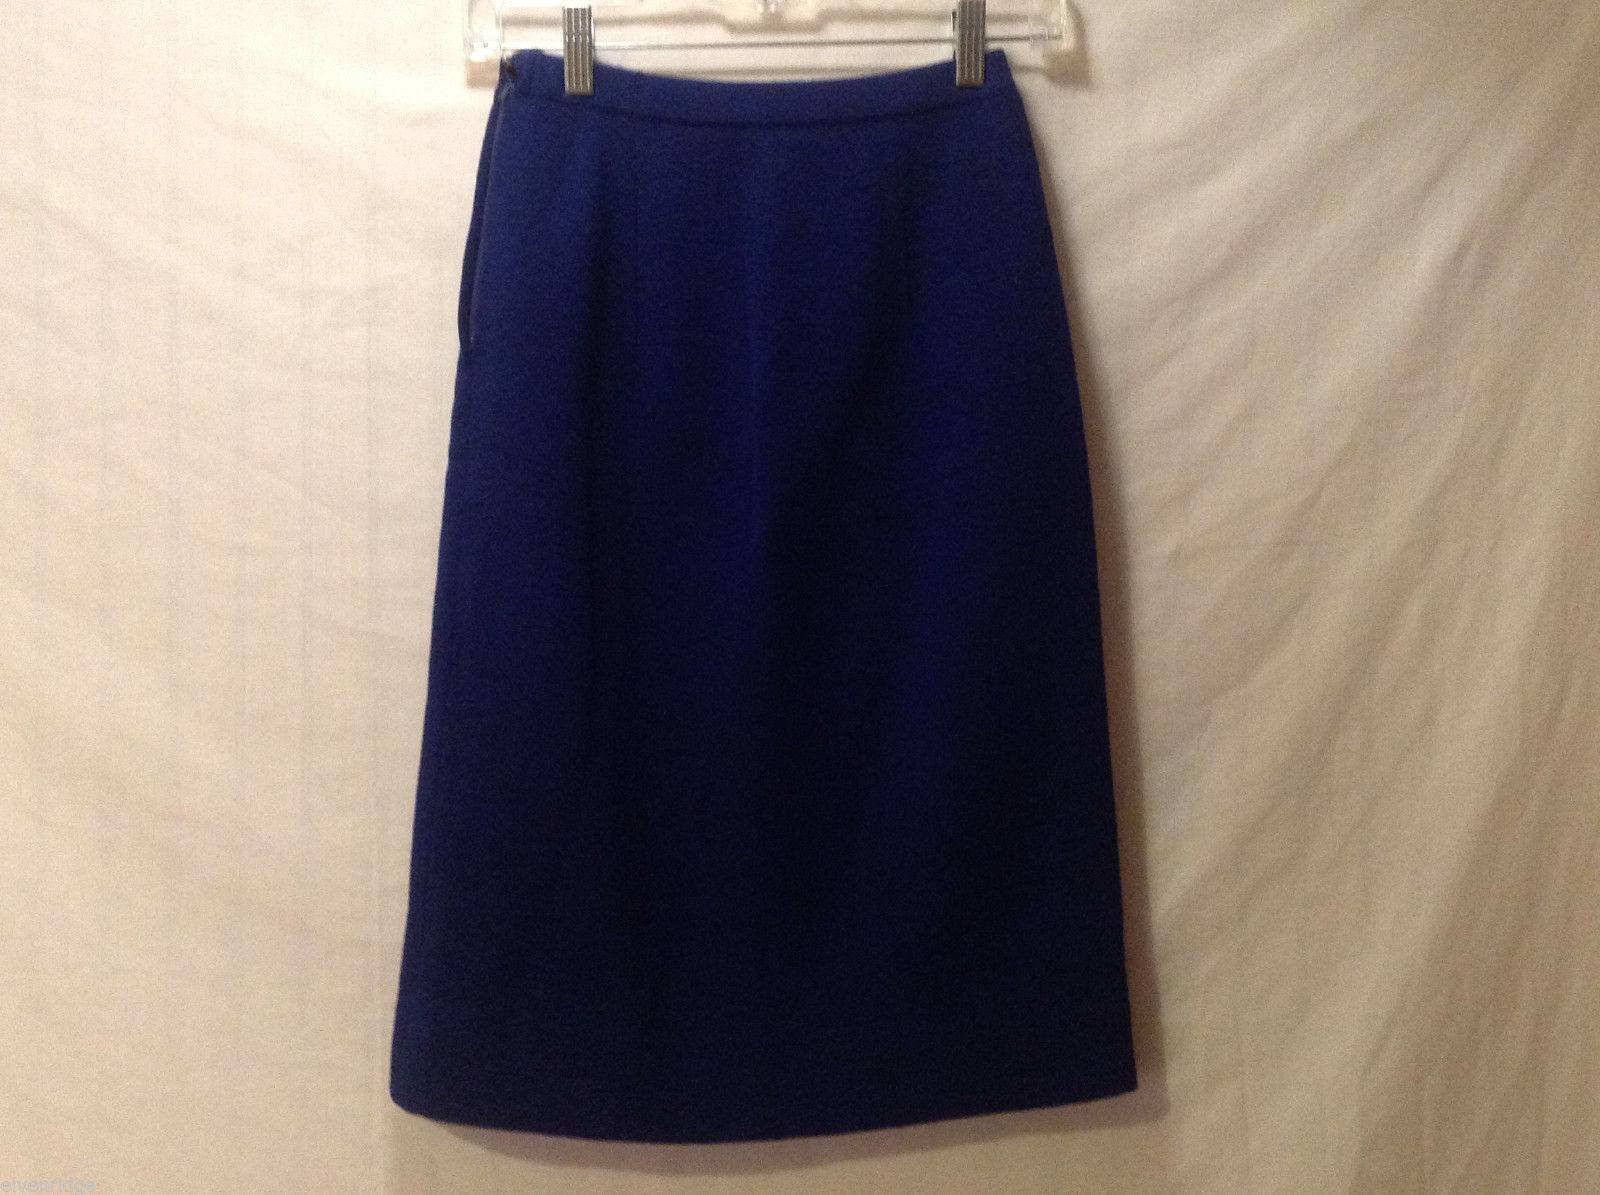 No Brand Women's Size 10 Skirt Navy Blue 100% Wool Italy Made A-Line Midi Length